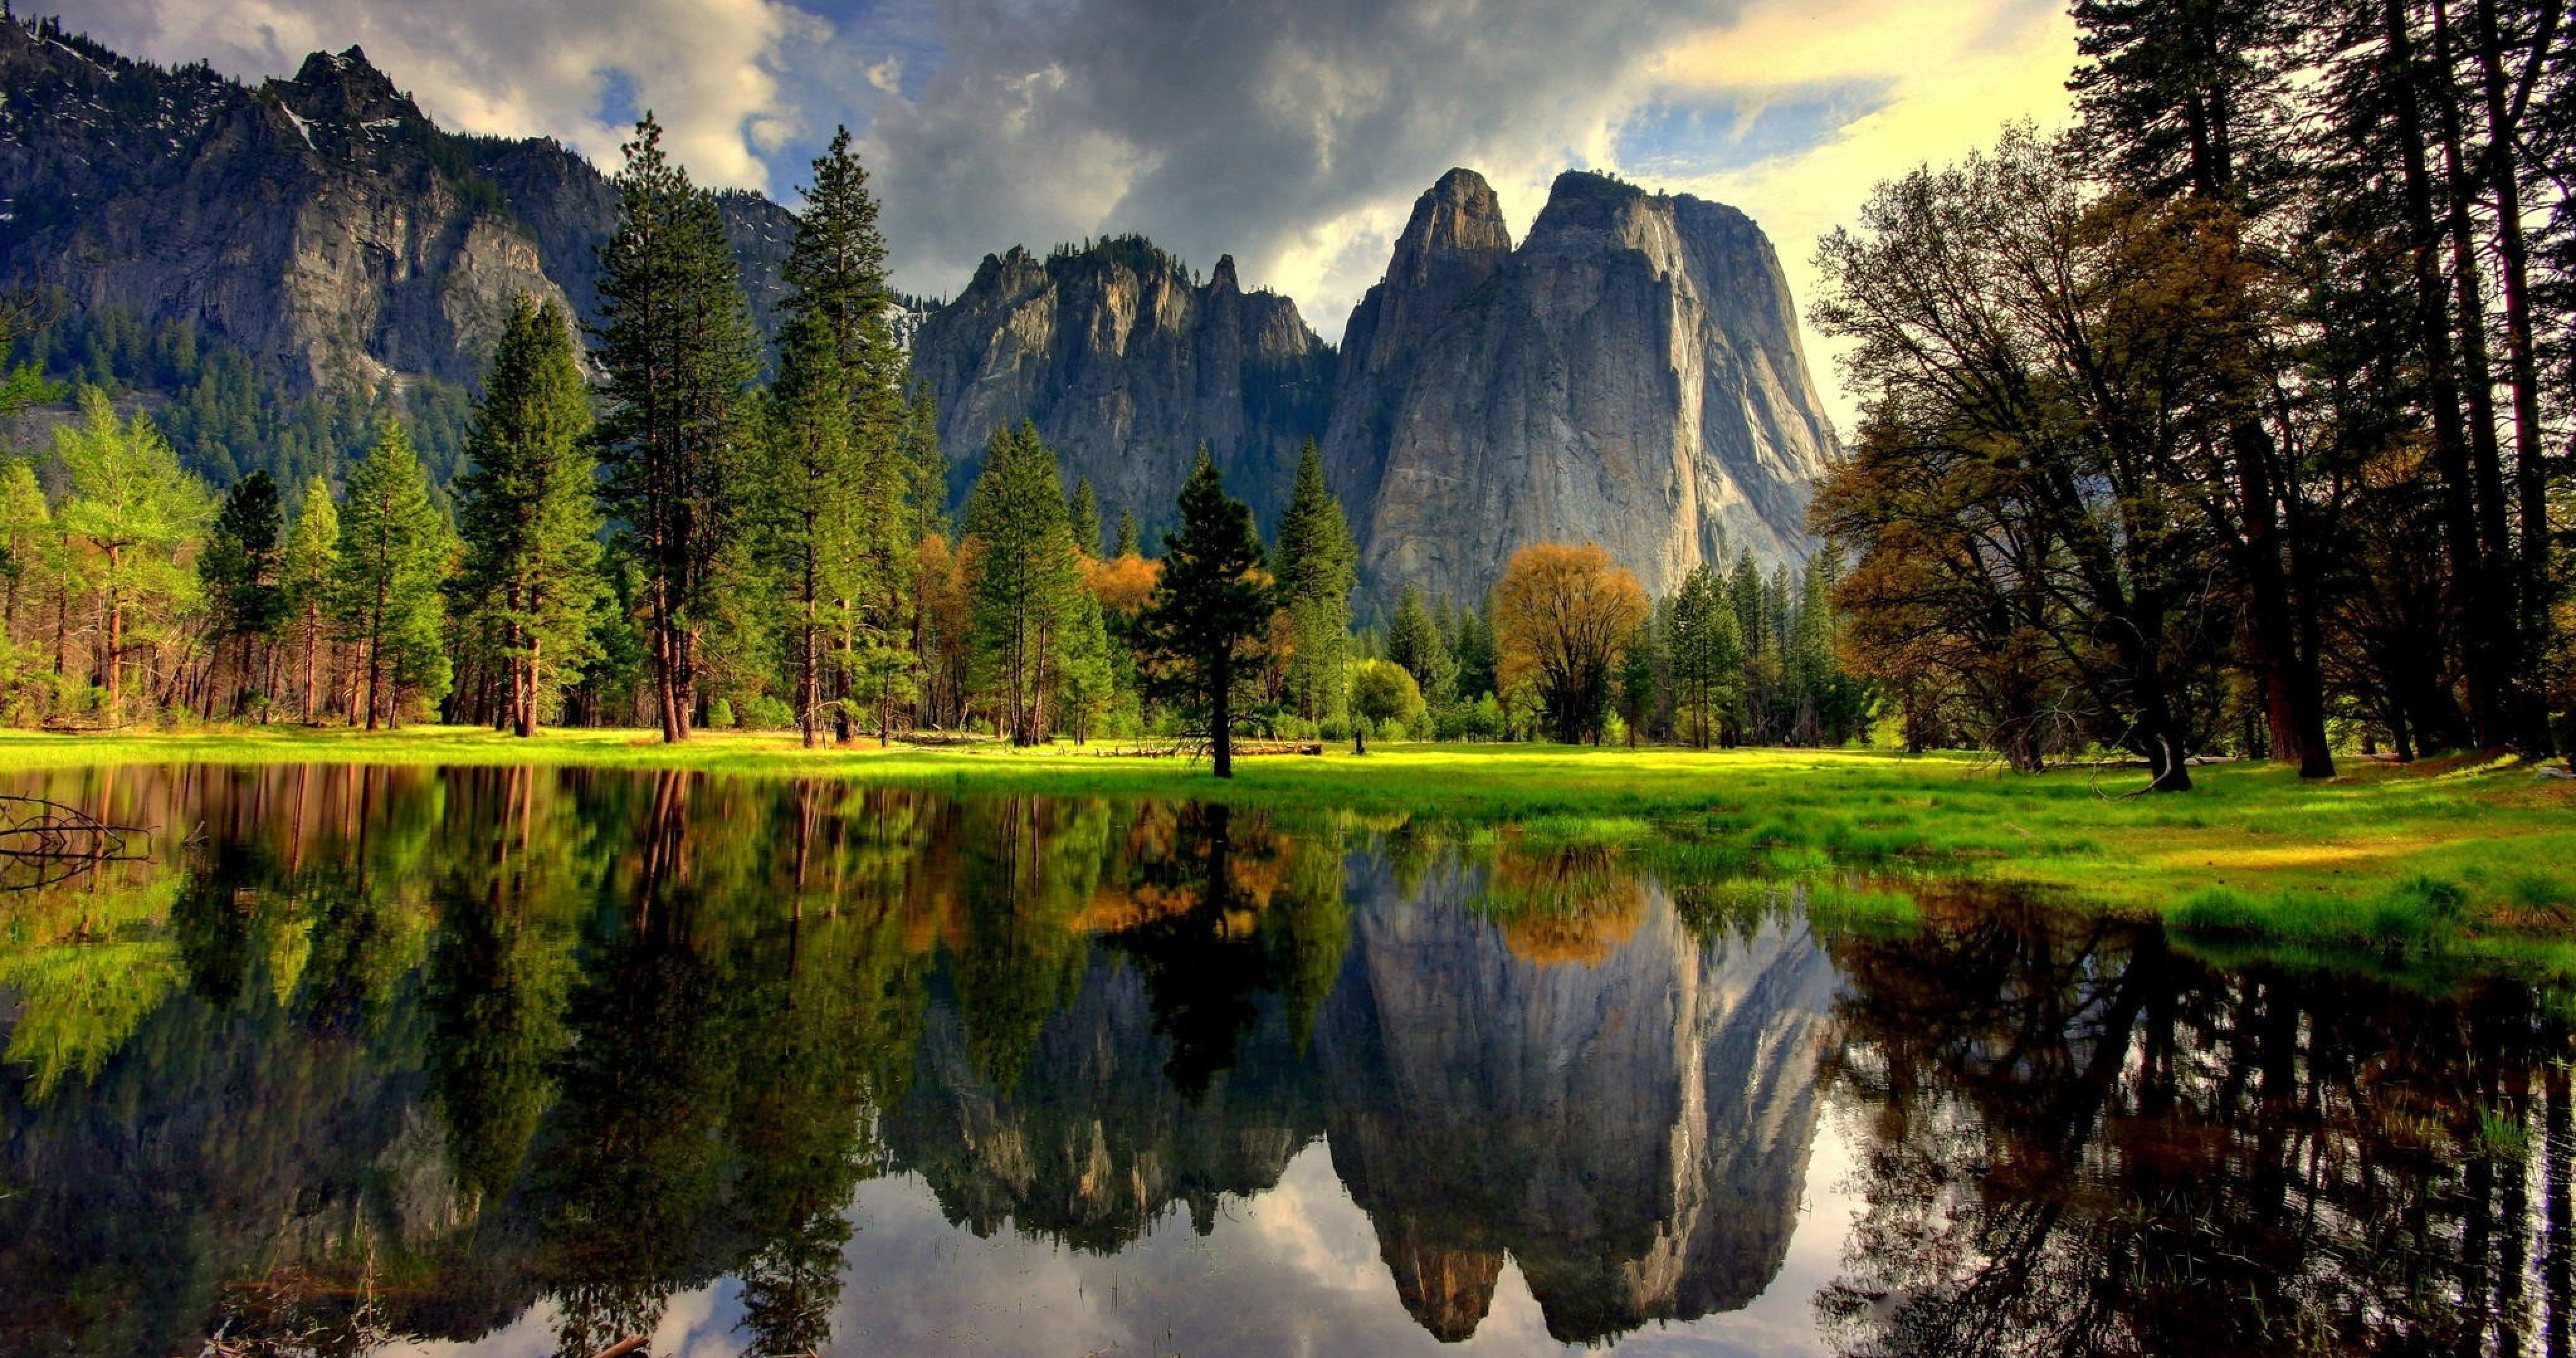 4k Nature Wallpaper: HD Wallpapers , HD Backgrounds,Tumblr